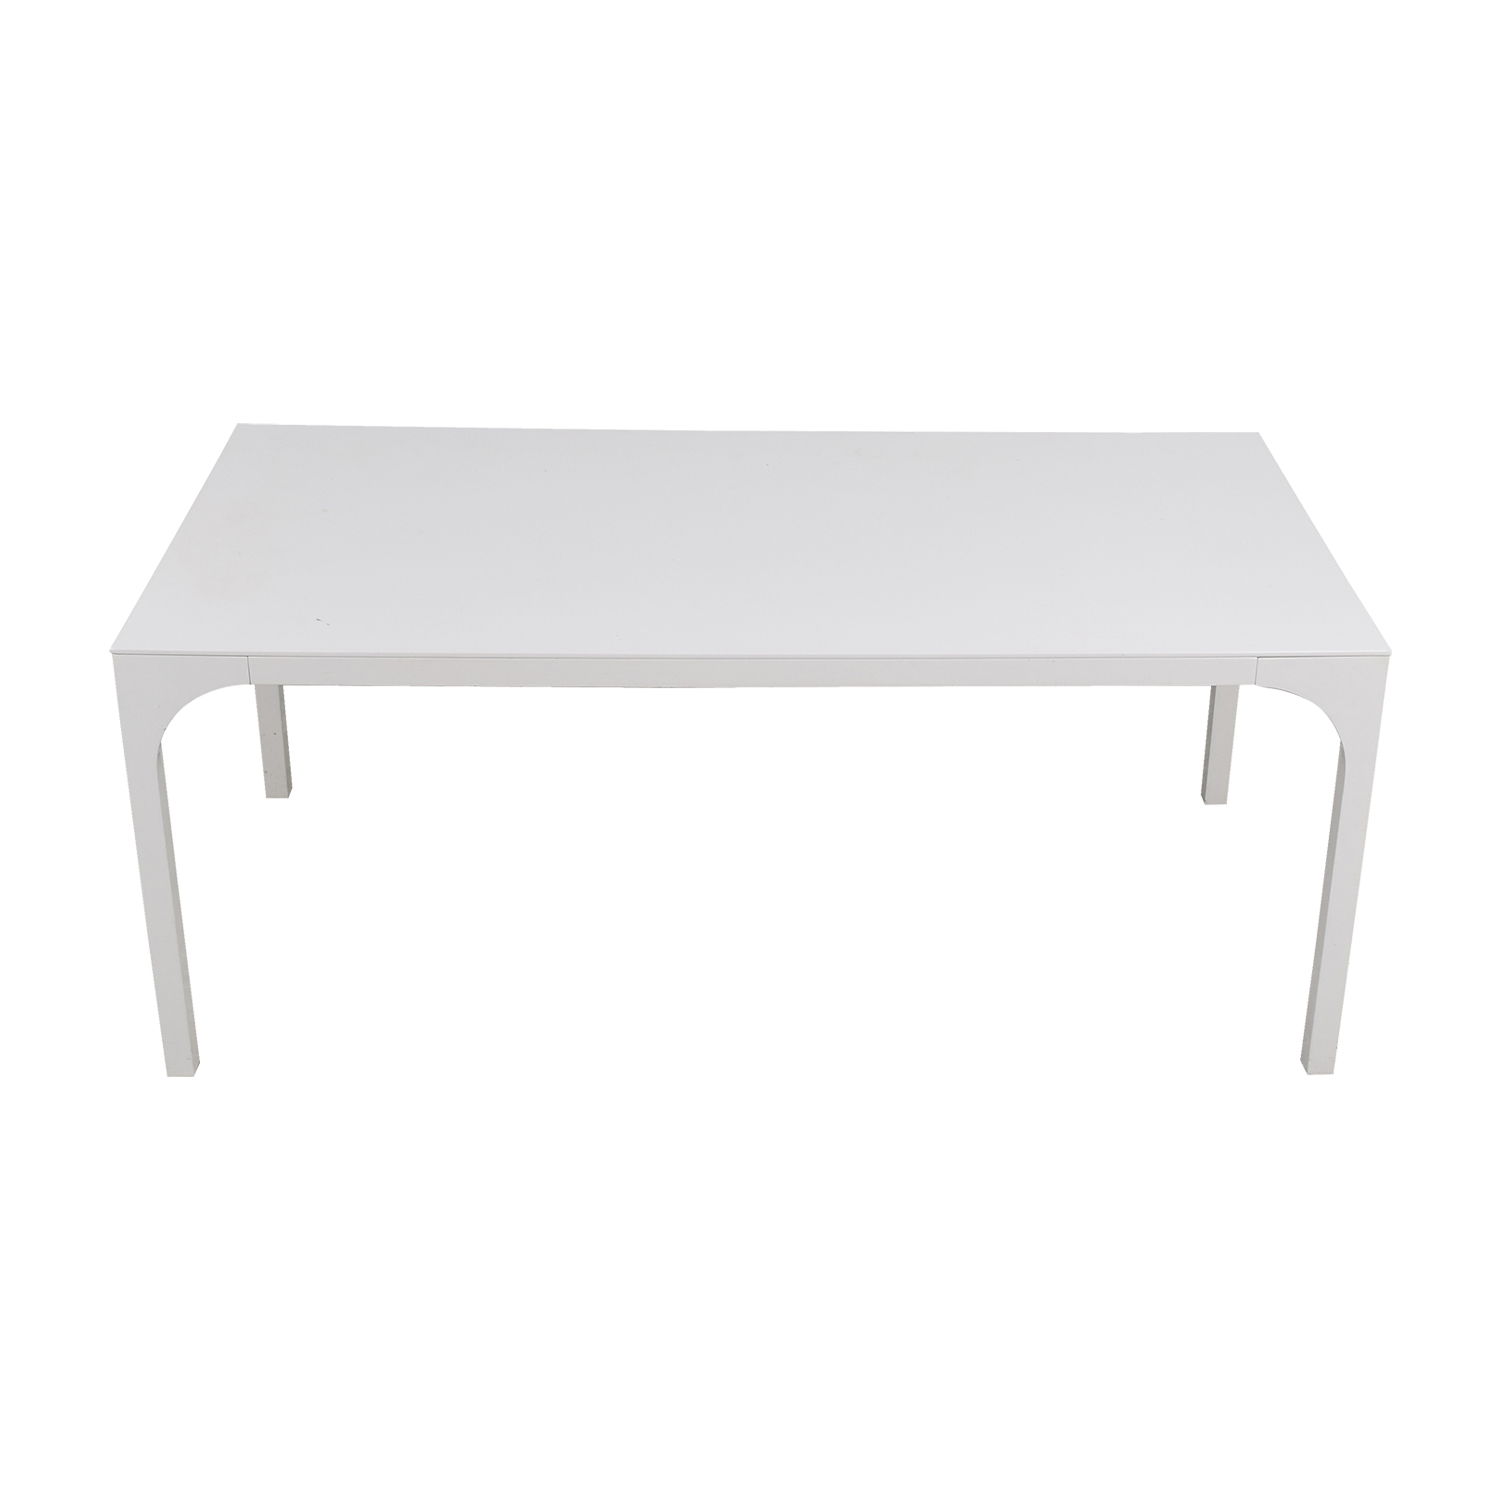 CB2 CB2 Aqua Virgo White Dining Table Tables